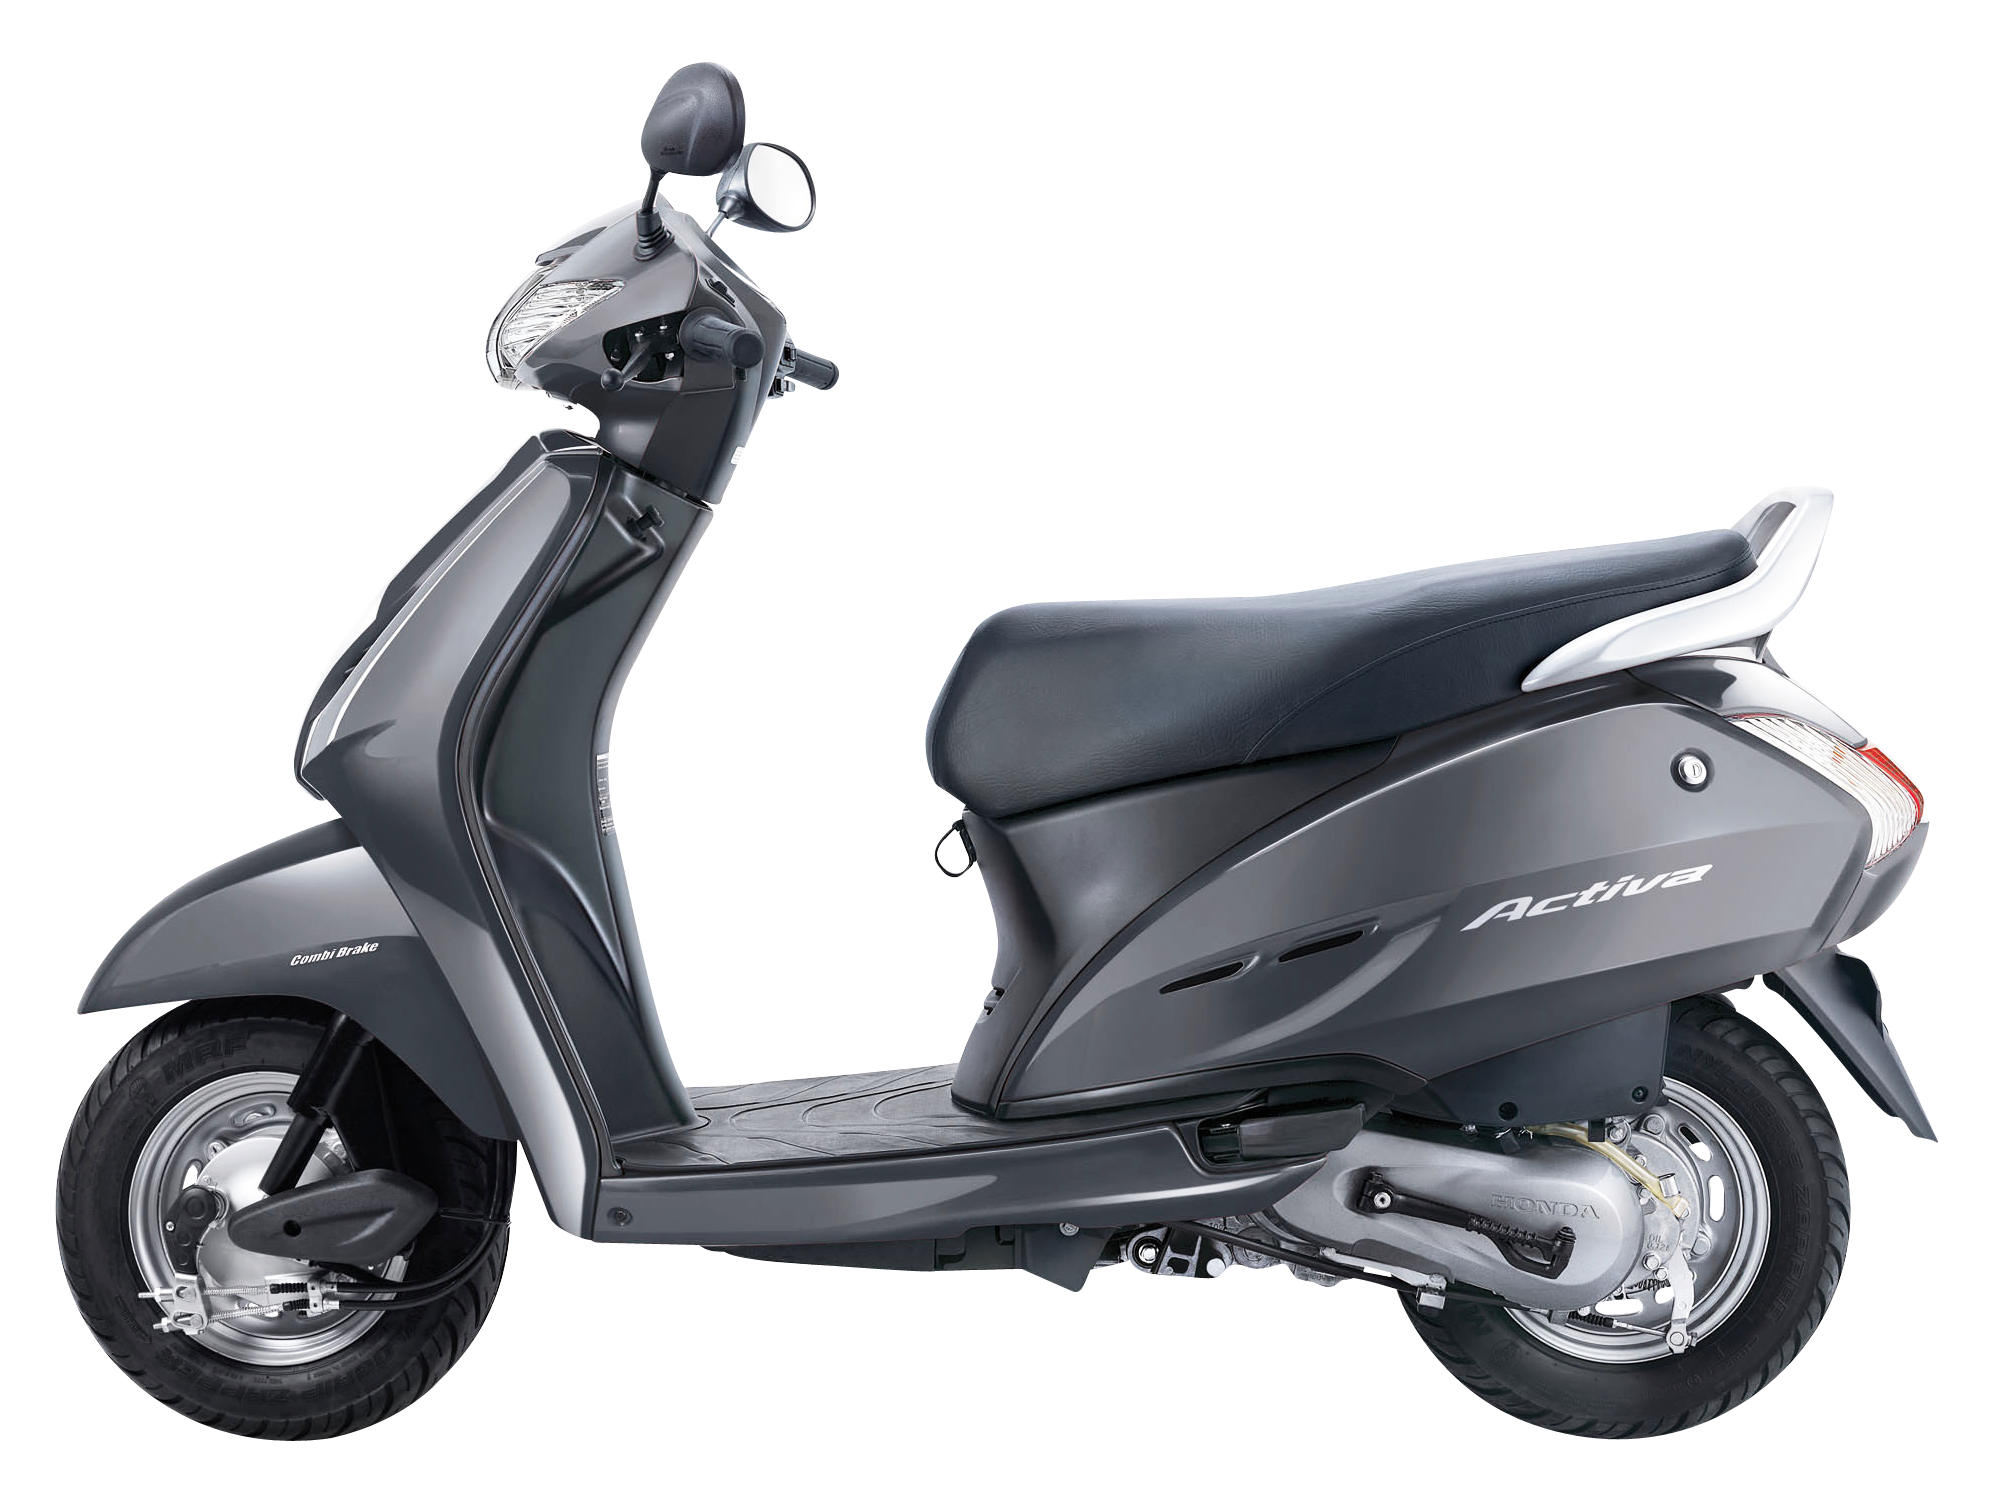 Honda activa g png. Motorcycle clipart scooty